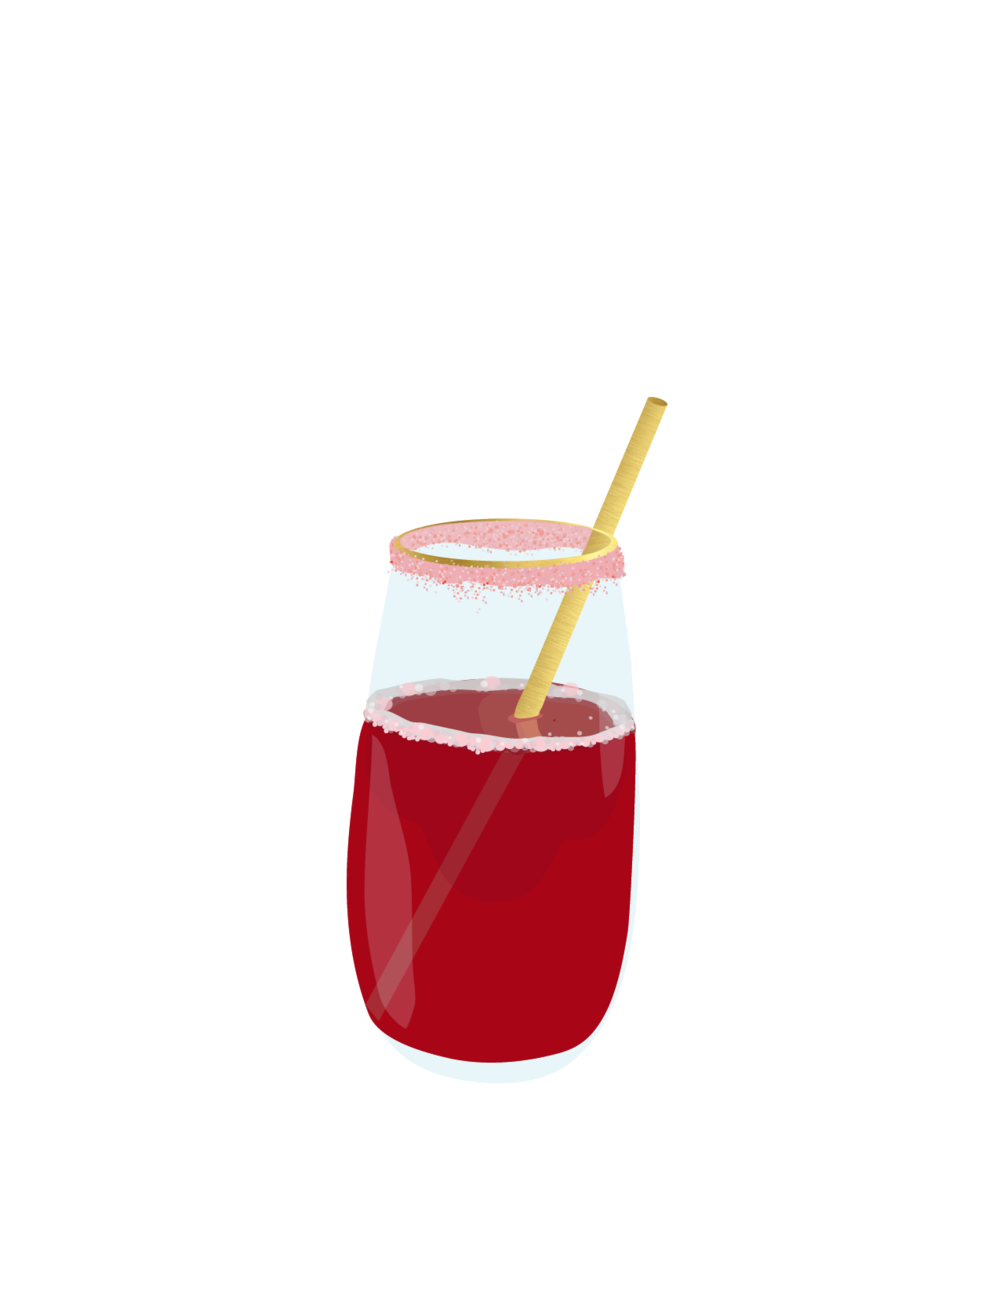 cosmo illustration-01.png